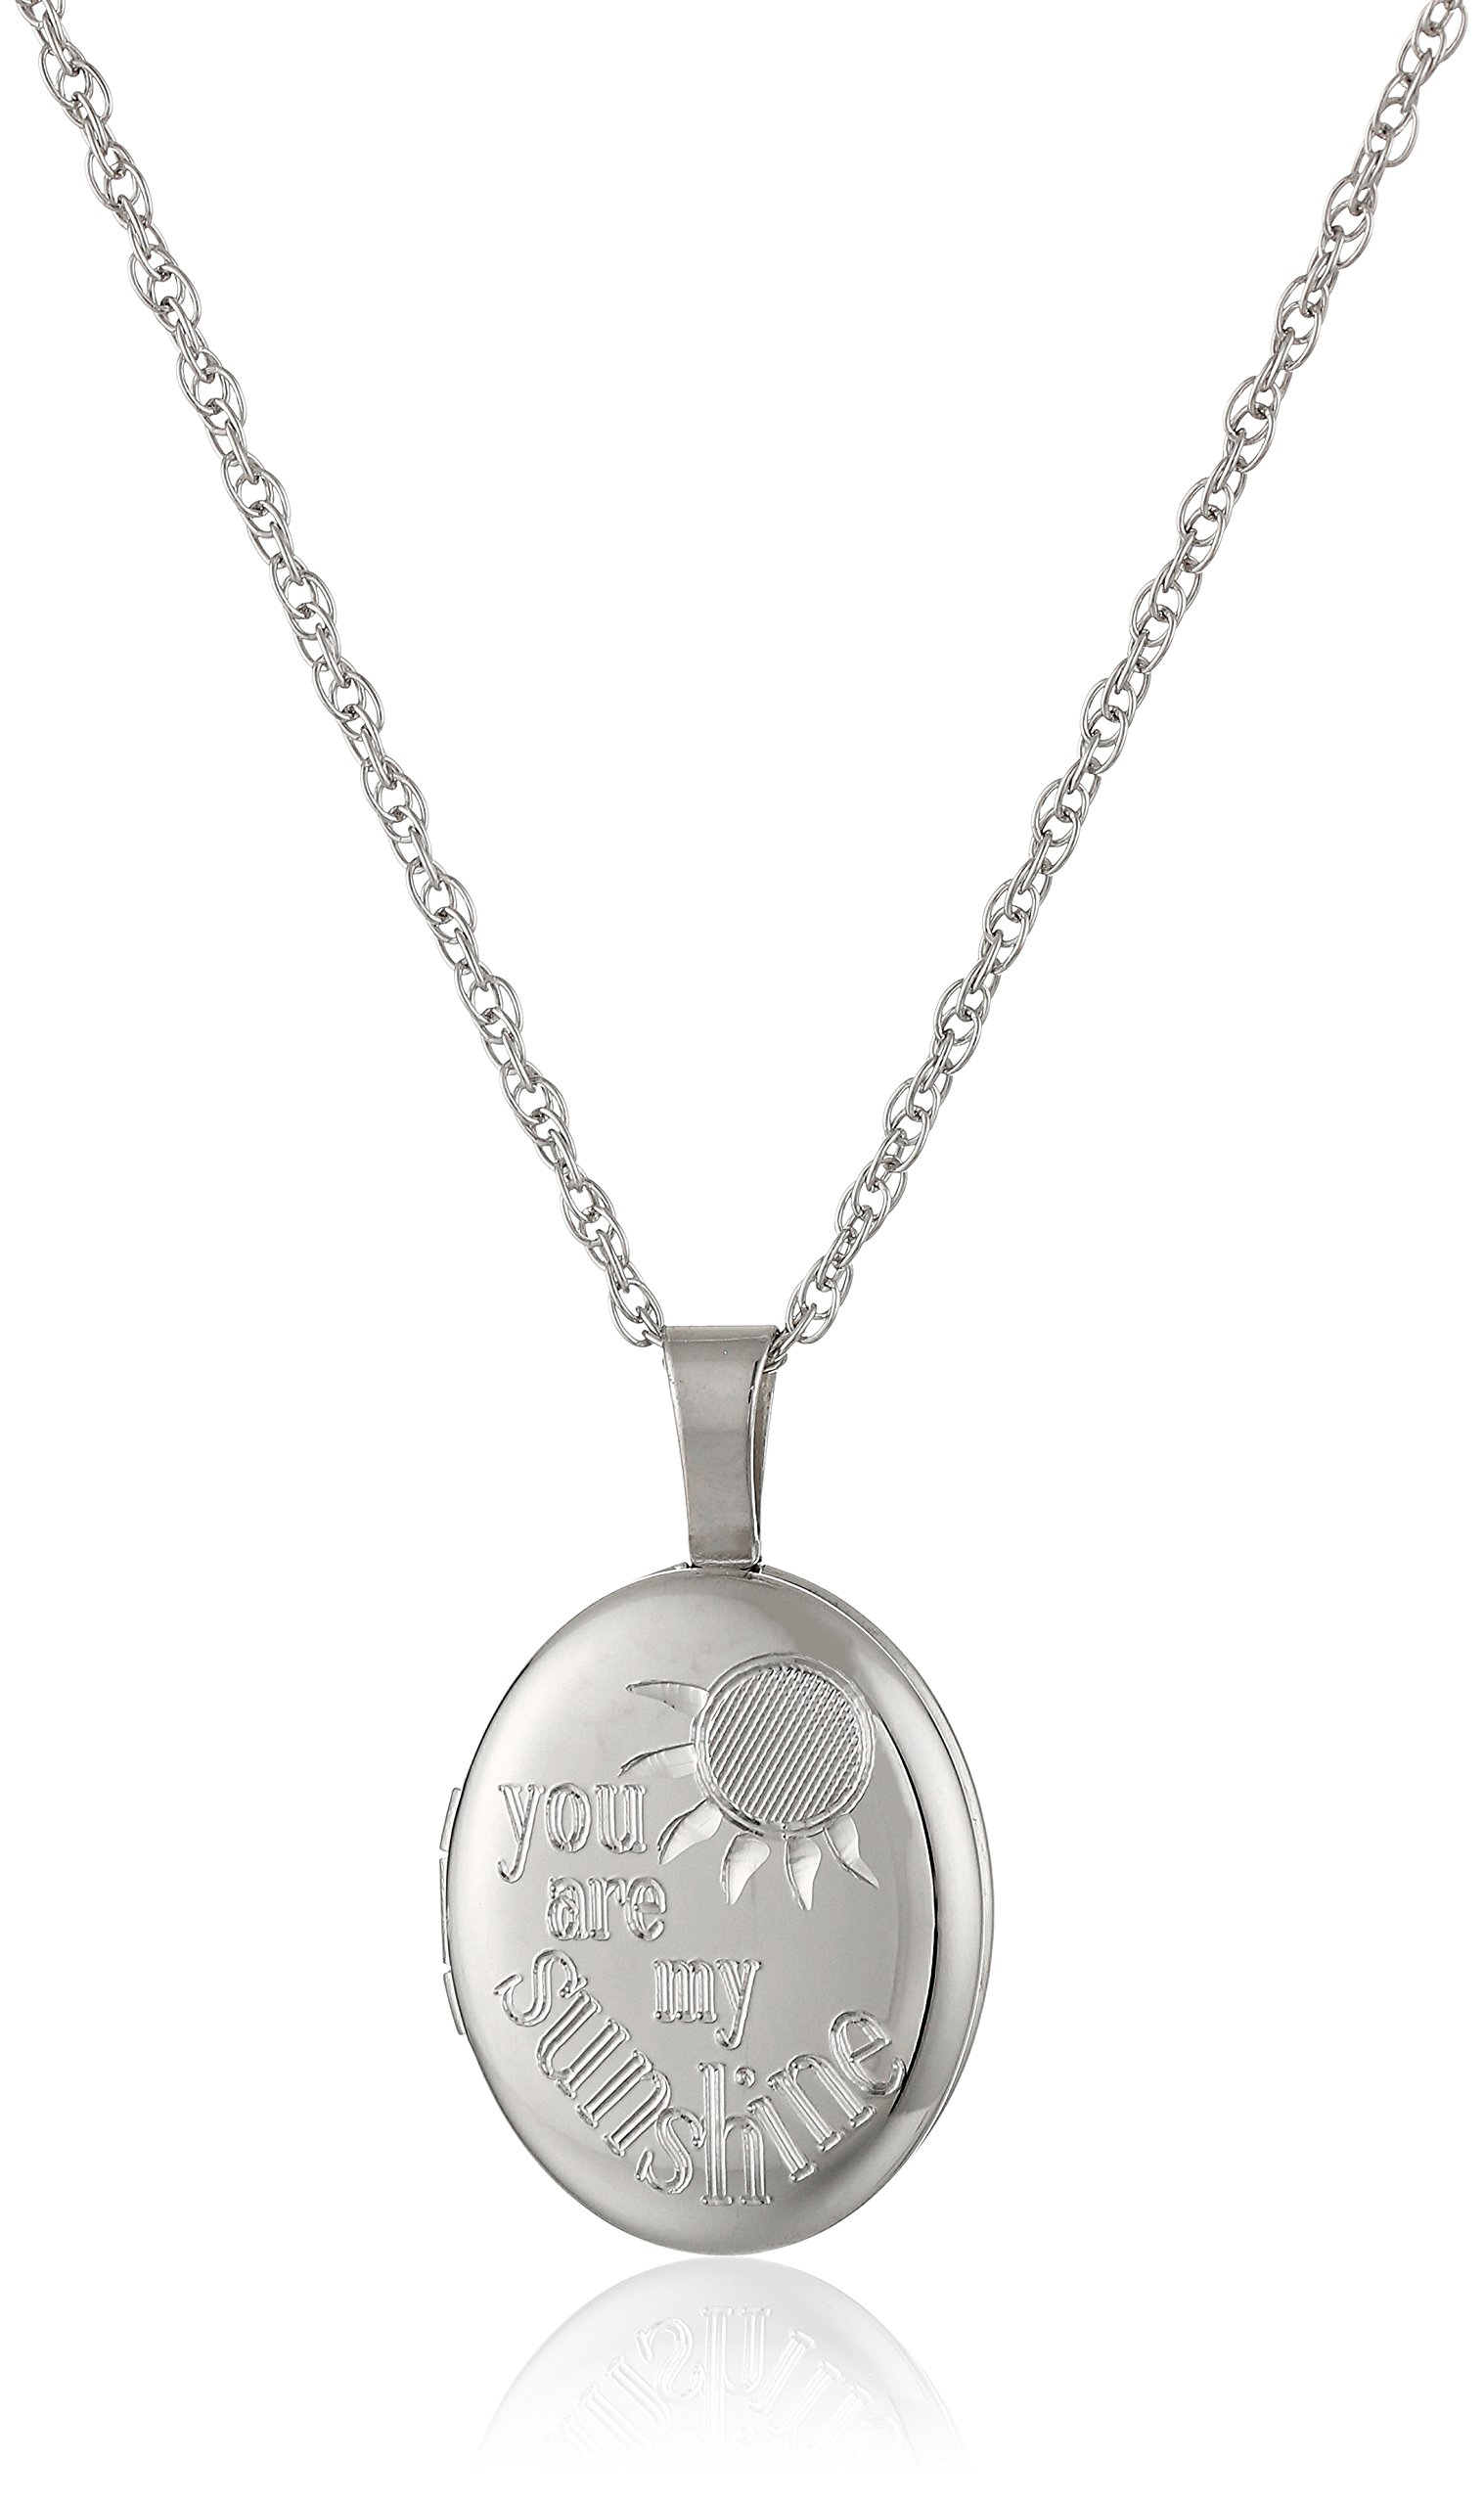 Ladies' Sterling Silver Oval Pendant with''You are My Sunshine'' Locket Necklace, 18''